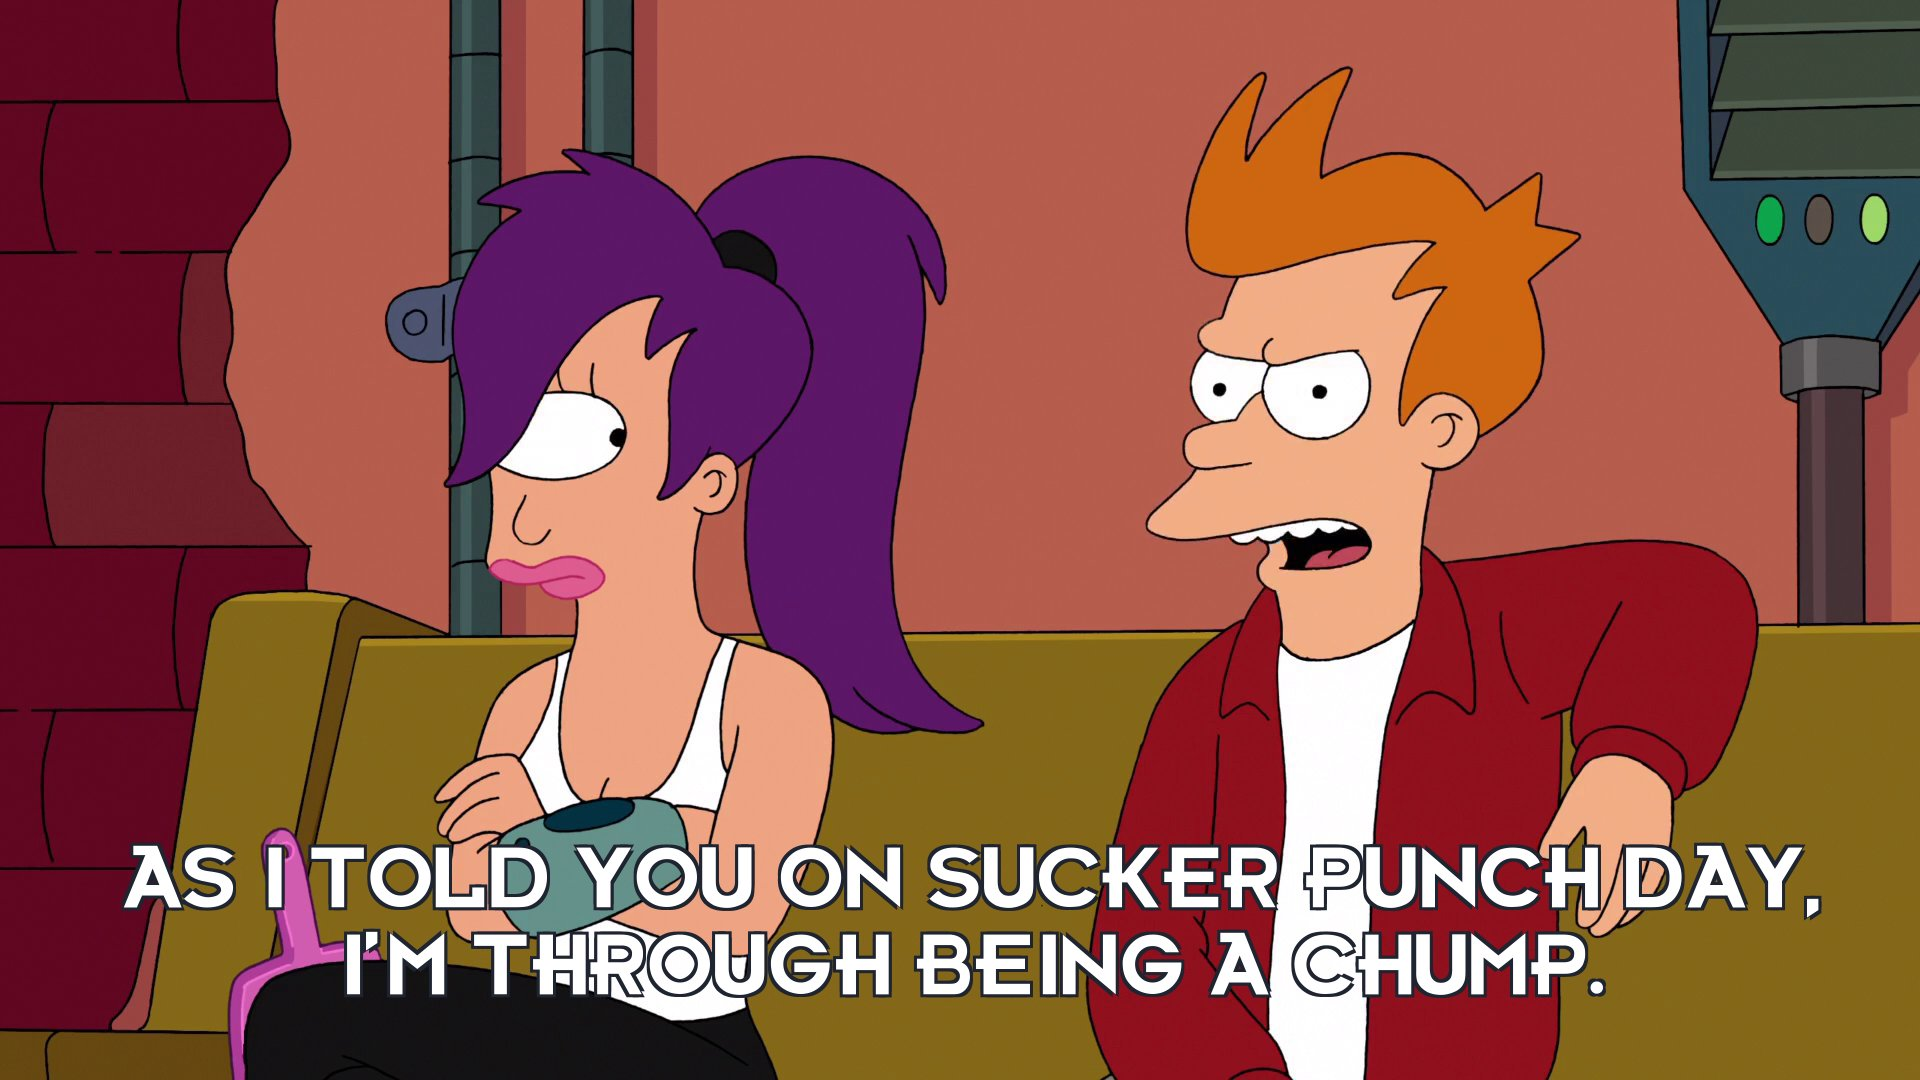 Philip J Fry: As I told you on Sucker Punch Day, I'm through being a chump.